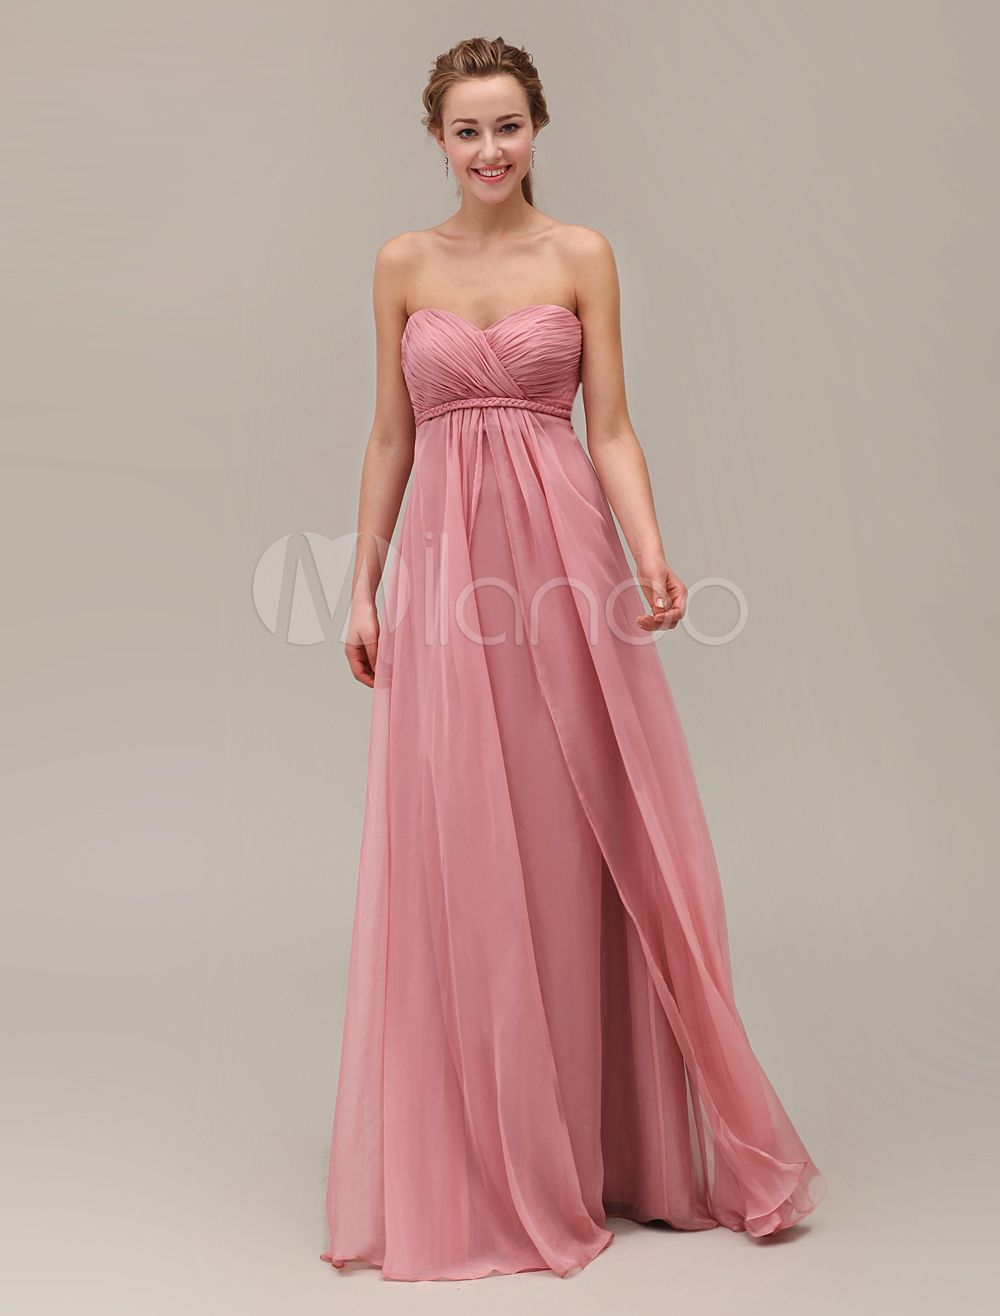 Sweetheart Neck Strapless Floor-Length Bridesmaid Dress With Tiered ...